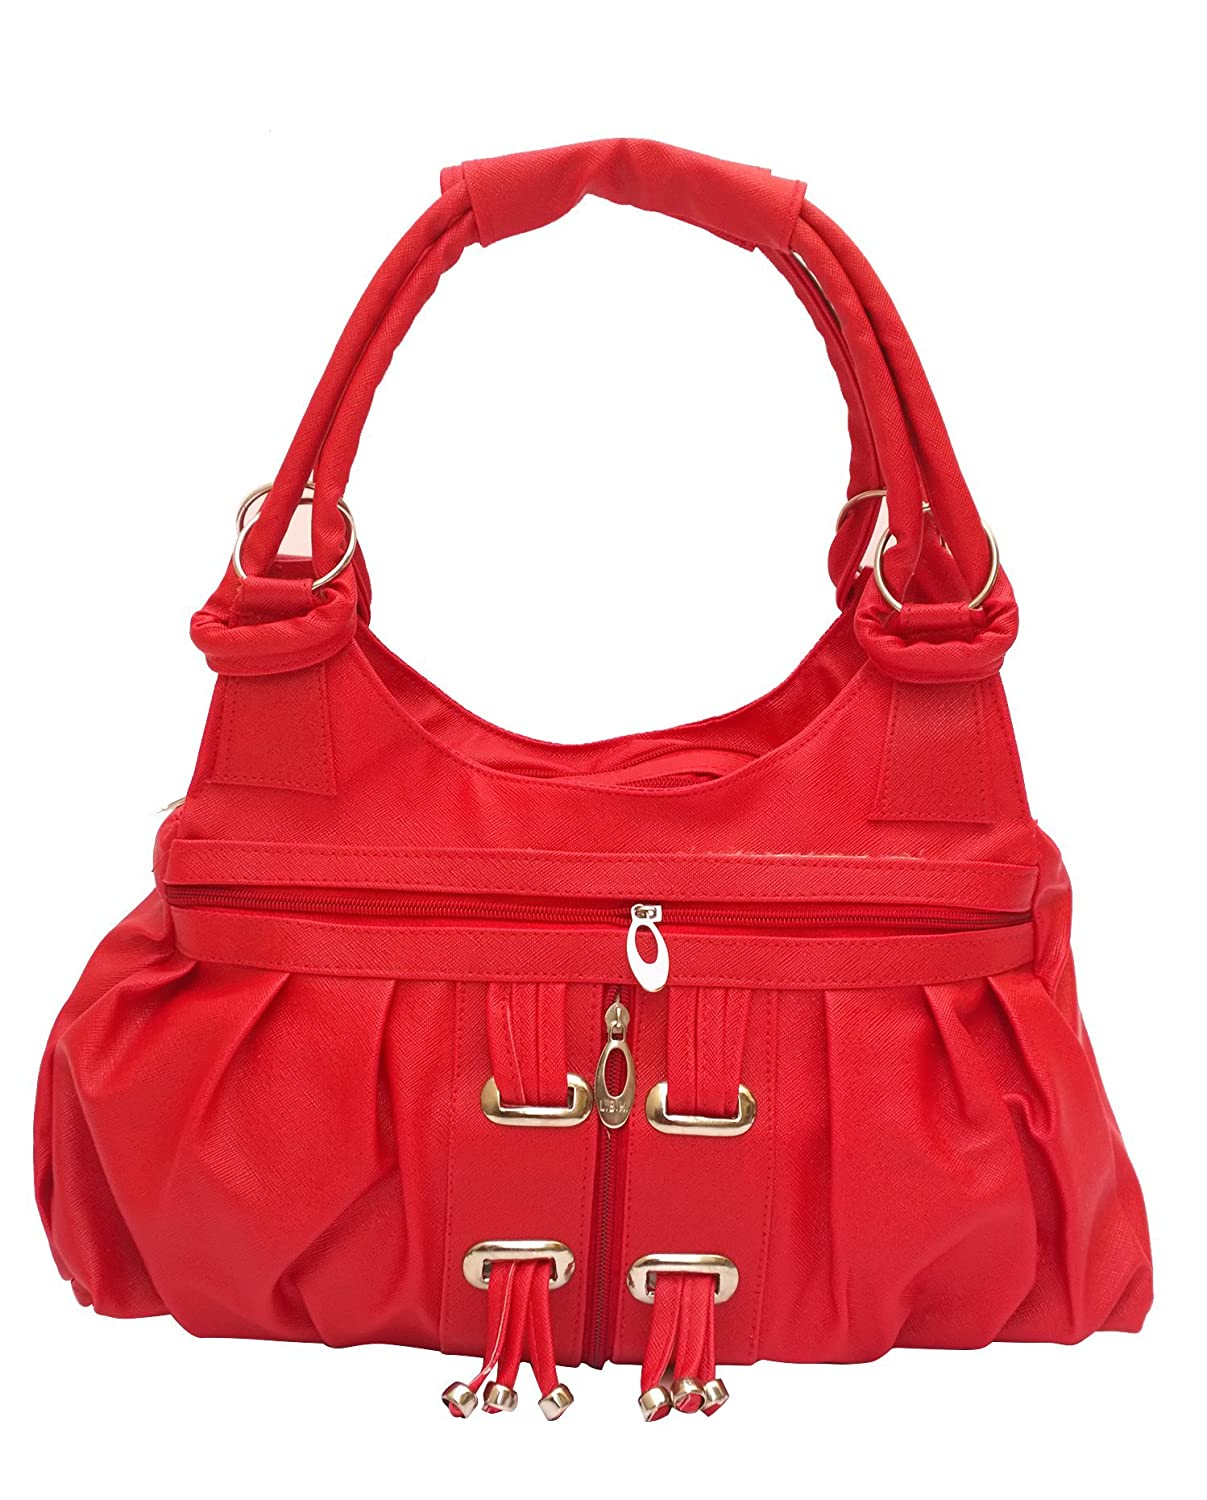 Vintage Women's Handbag(Red,Bag 120): Amazon.in: Clothing ...